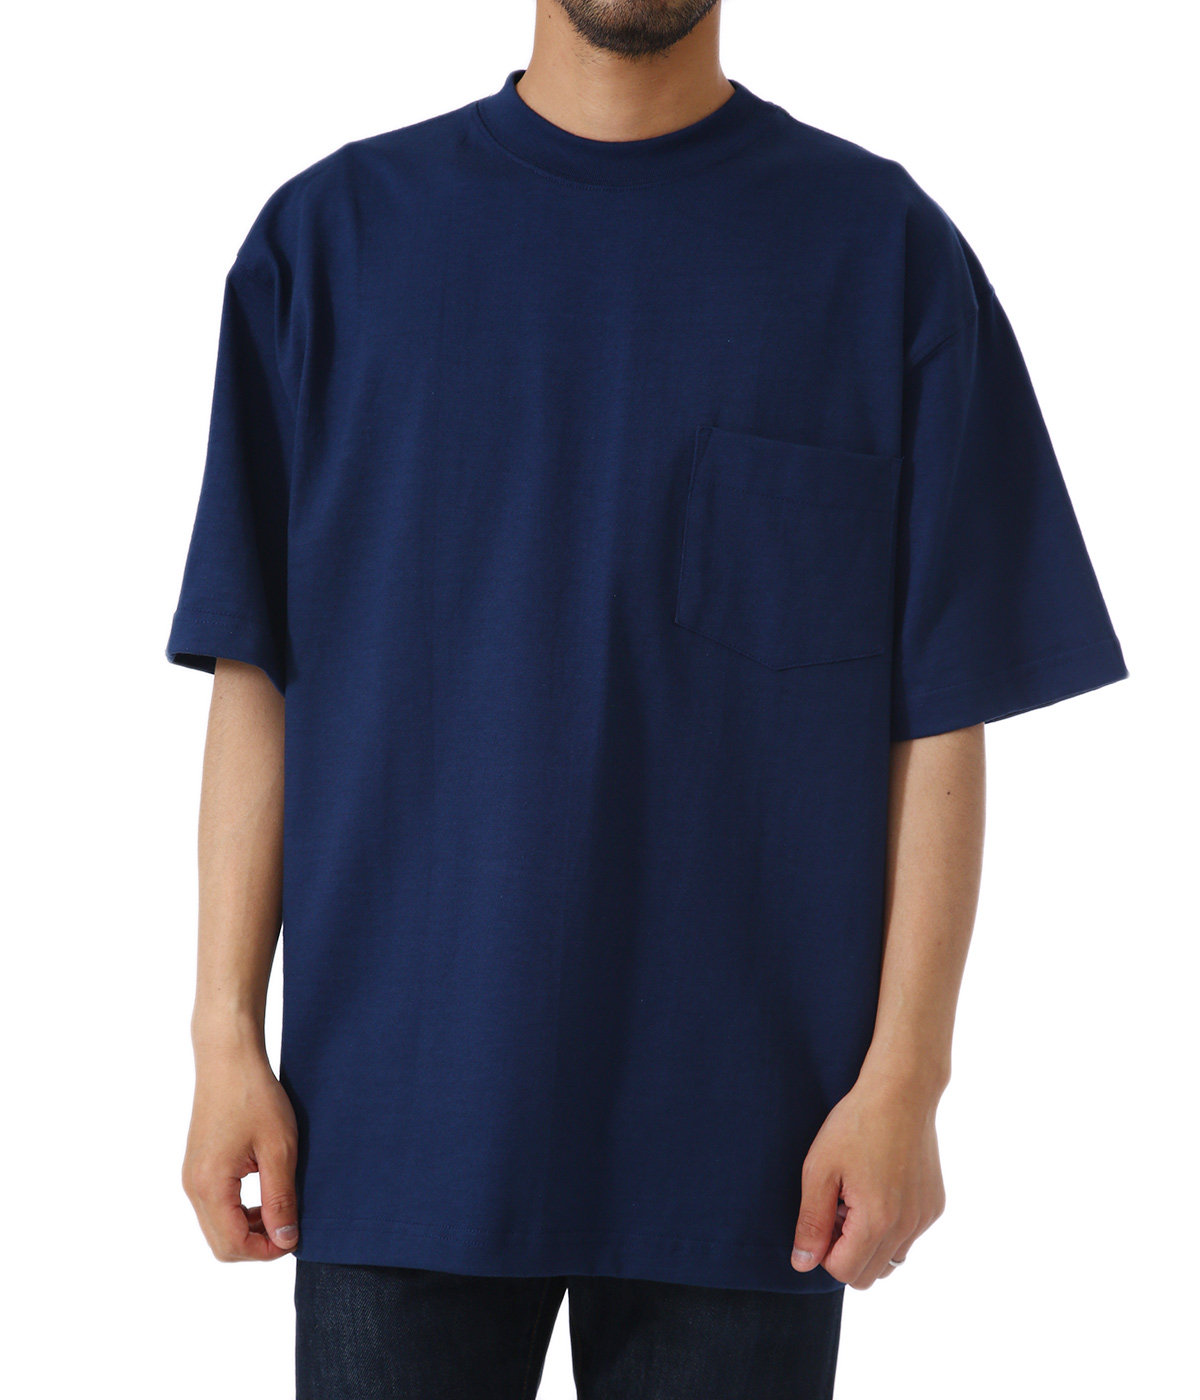 8oz POCKET T-SHIRT (302)